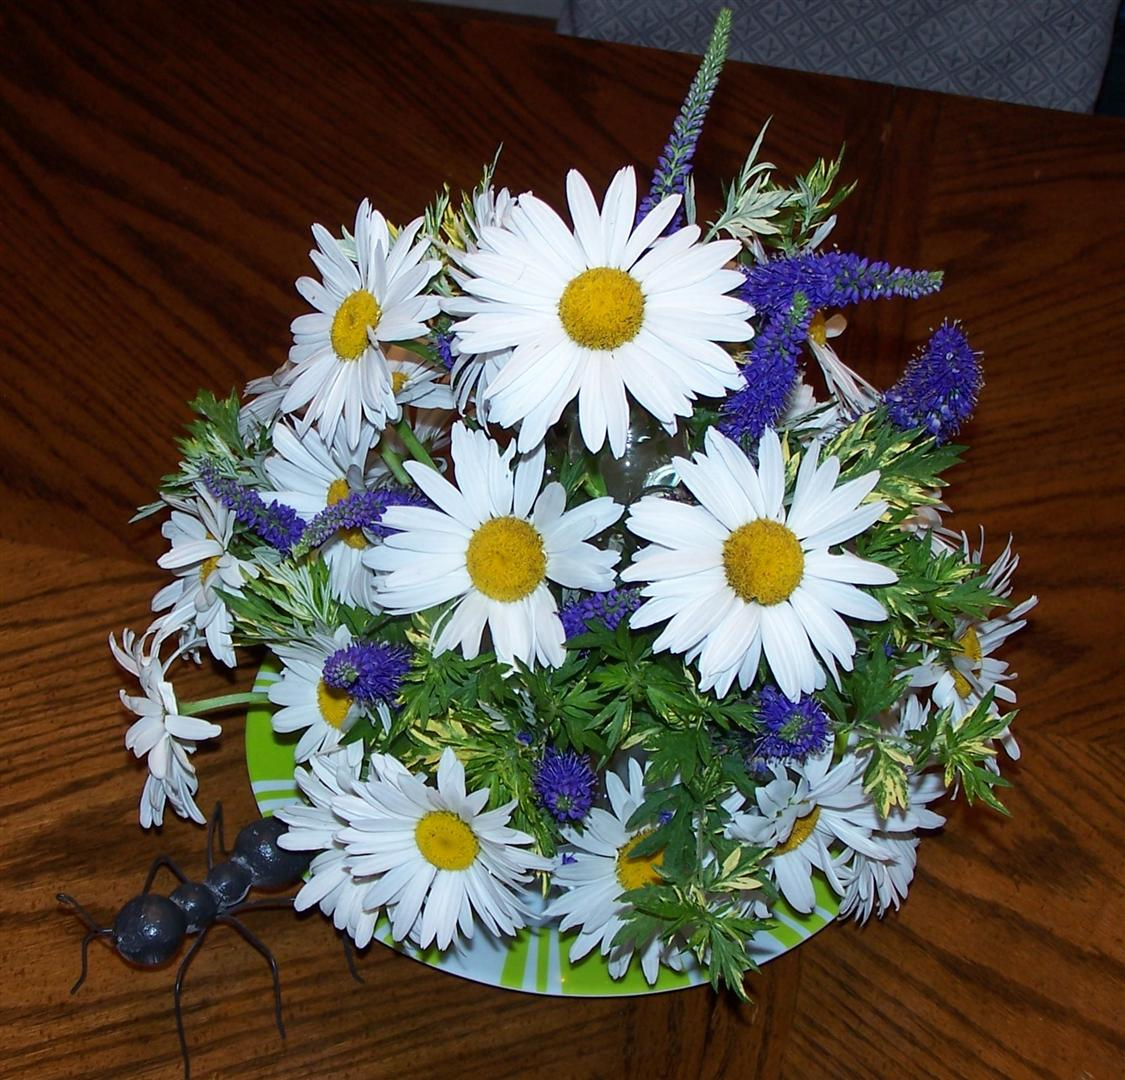 Perennial passion shasta daisies make great centerpieces shasta daisies make great centerpieces izmirmasajfo